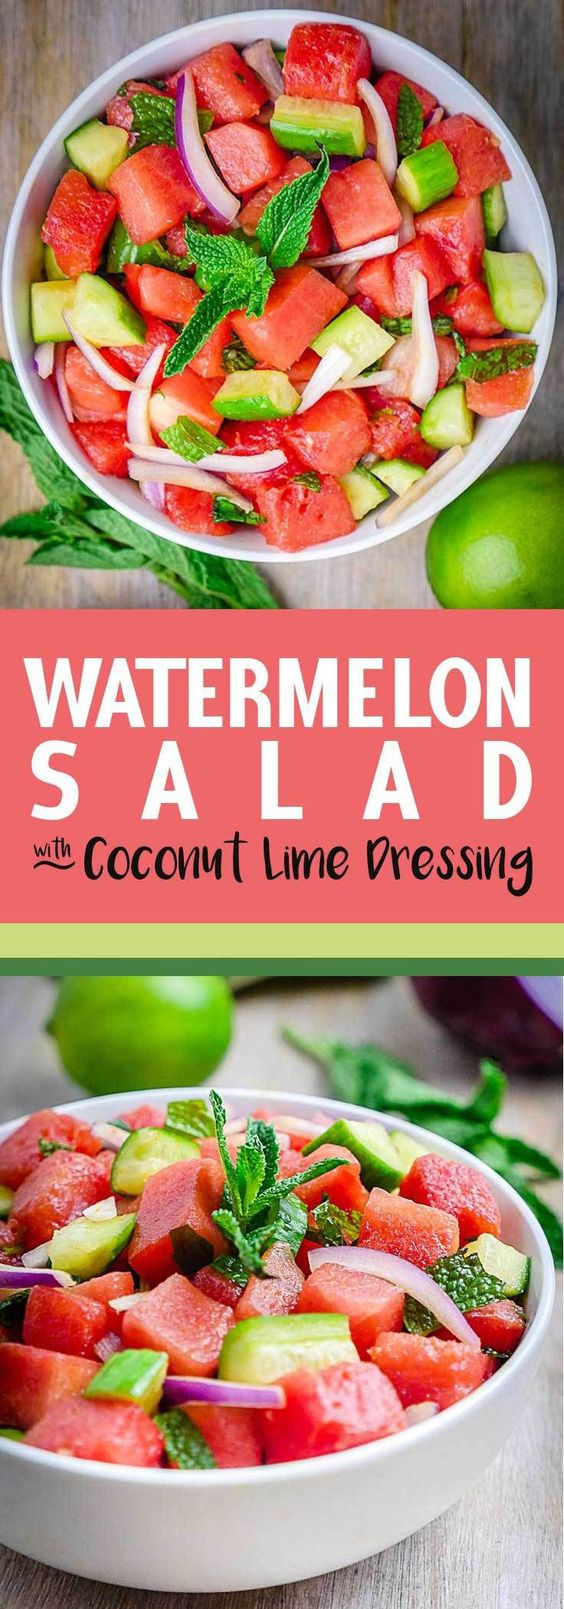 This simple and refreshing Watermelon Salad coated with Coconut Lime Dressing is…